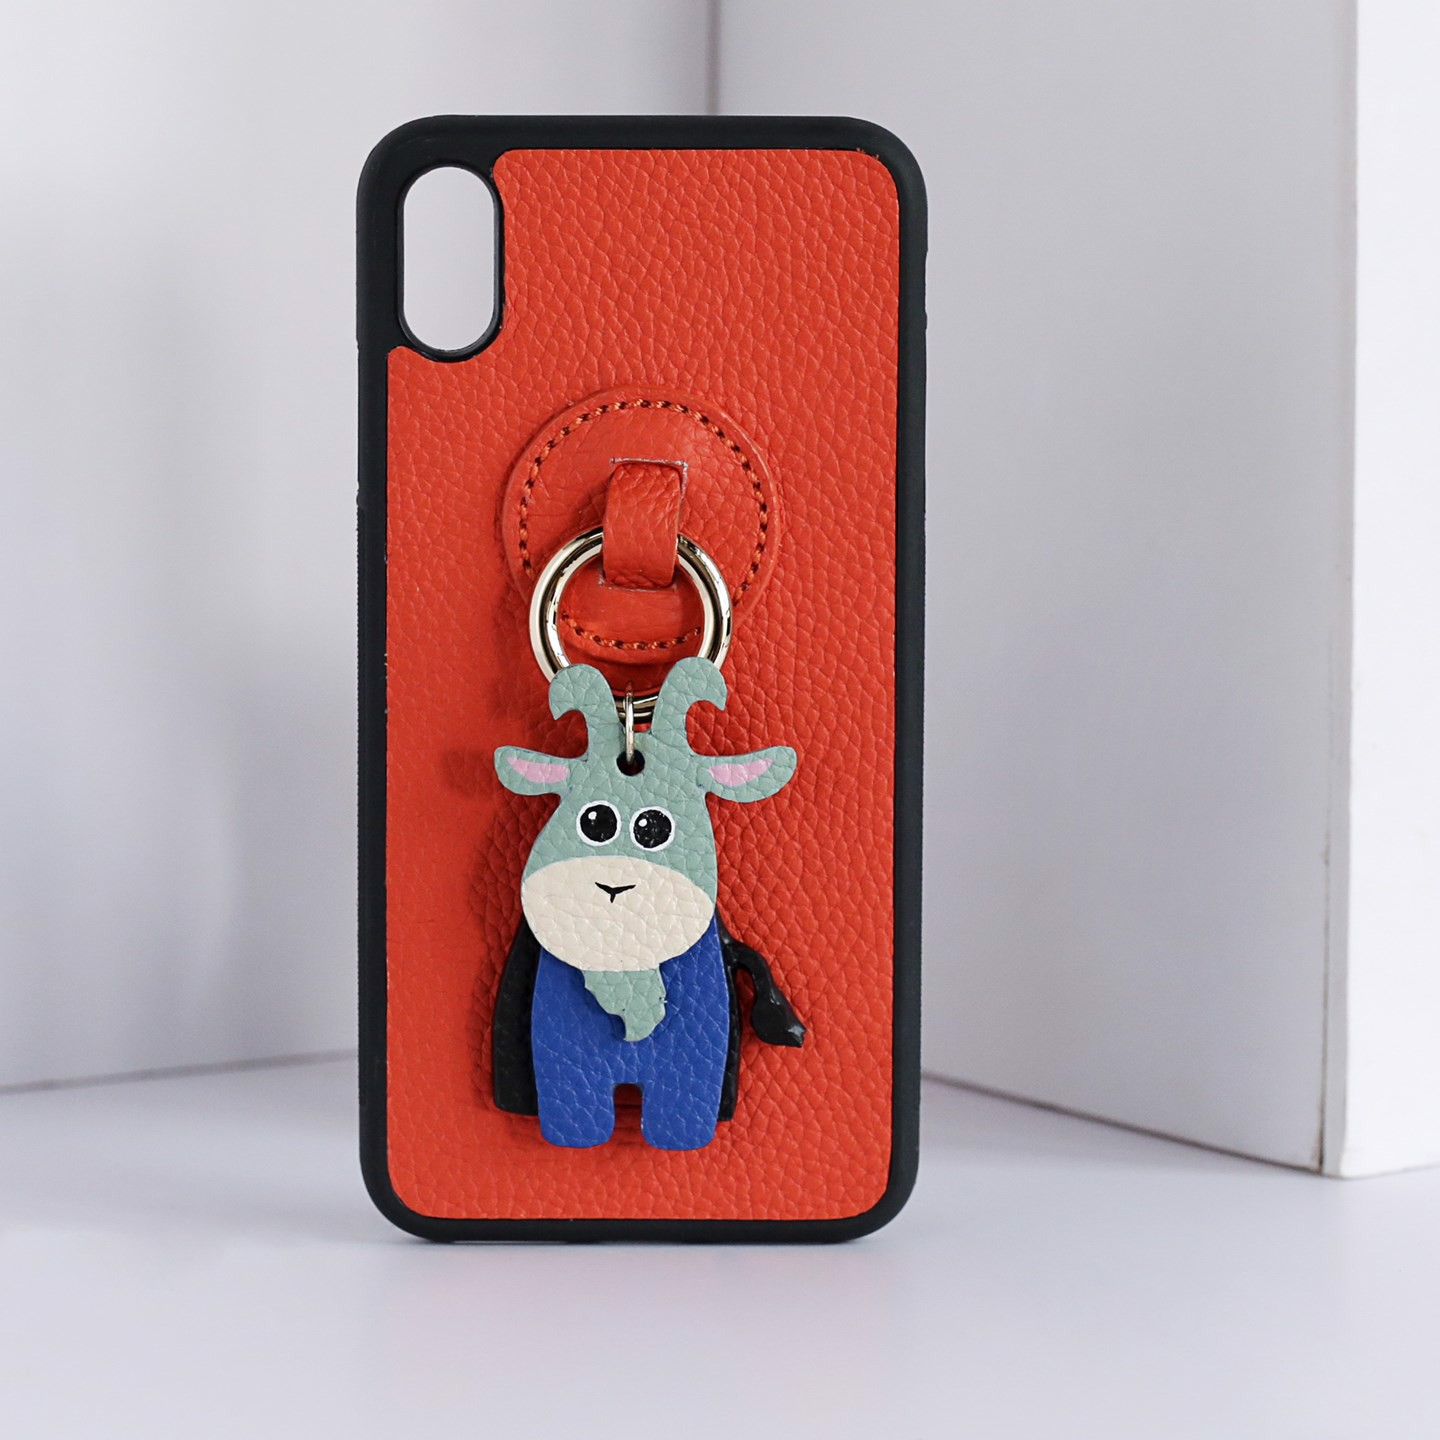 Case iPhone XS Max C81-PK13 Mùi